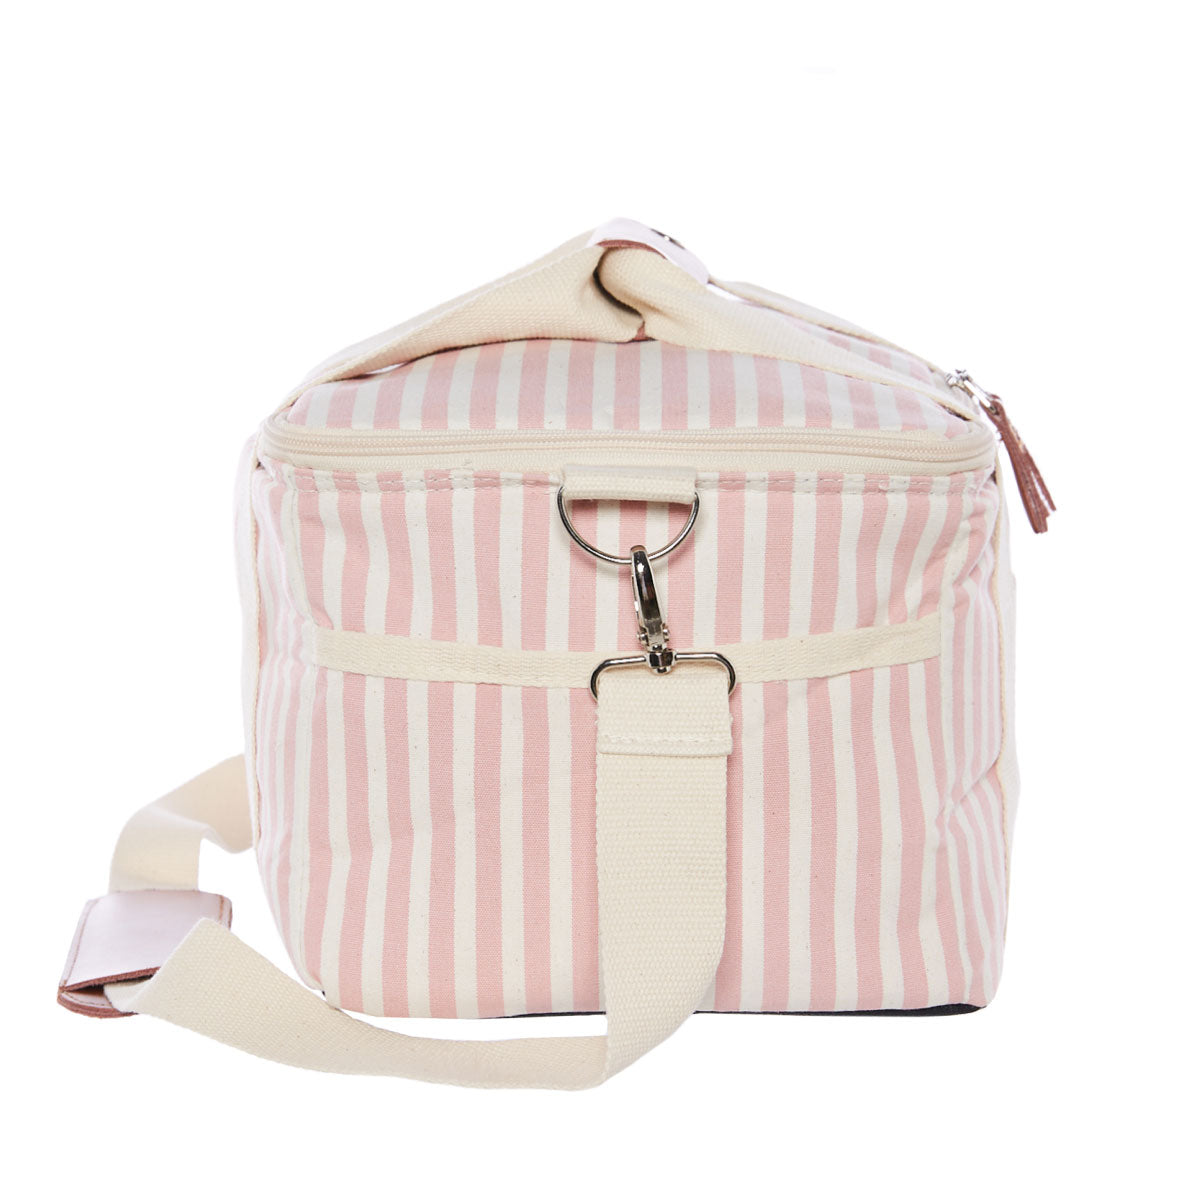 The Premium Cooler Bag - Lauren's Pink Stripe